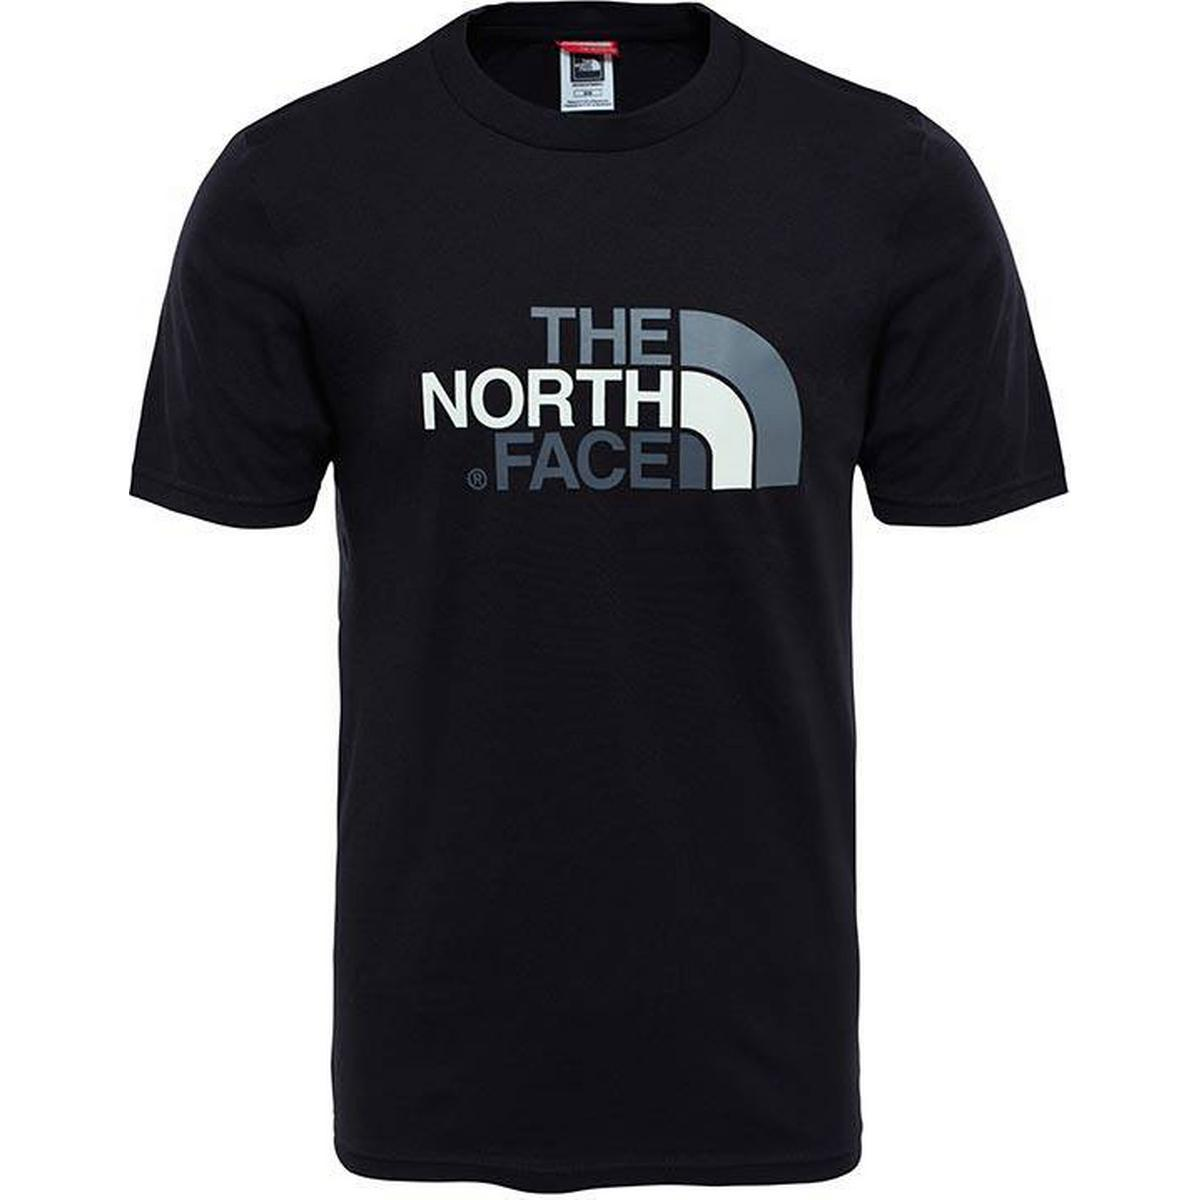 The North Face T Shirt Herretøj (400+ produkter) </p>                     </div> 		  <!--bof Product URL --> 										<!--eof Product URL --> 					<!--bof Quantity Discounts table --> 											<!--eof Quantity Discounts table --> 				</div> 				                       			</dd> 						<dt class=